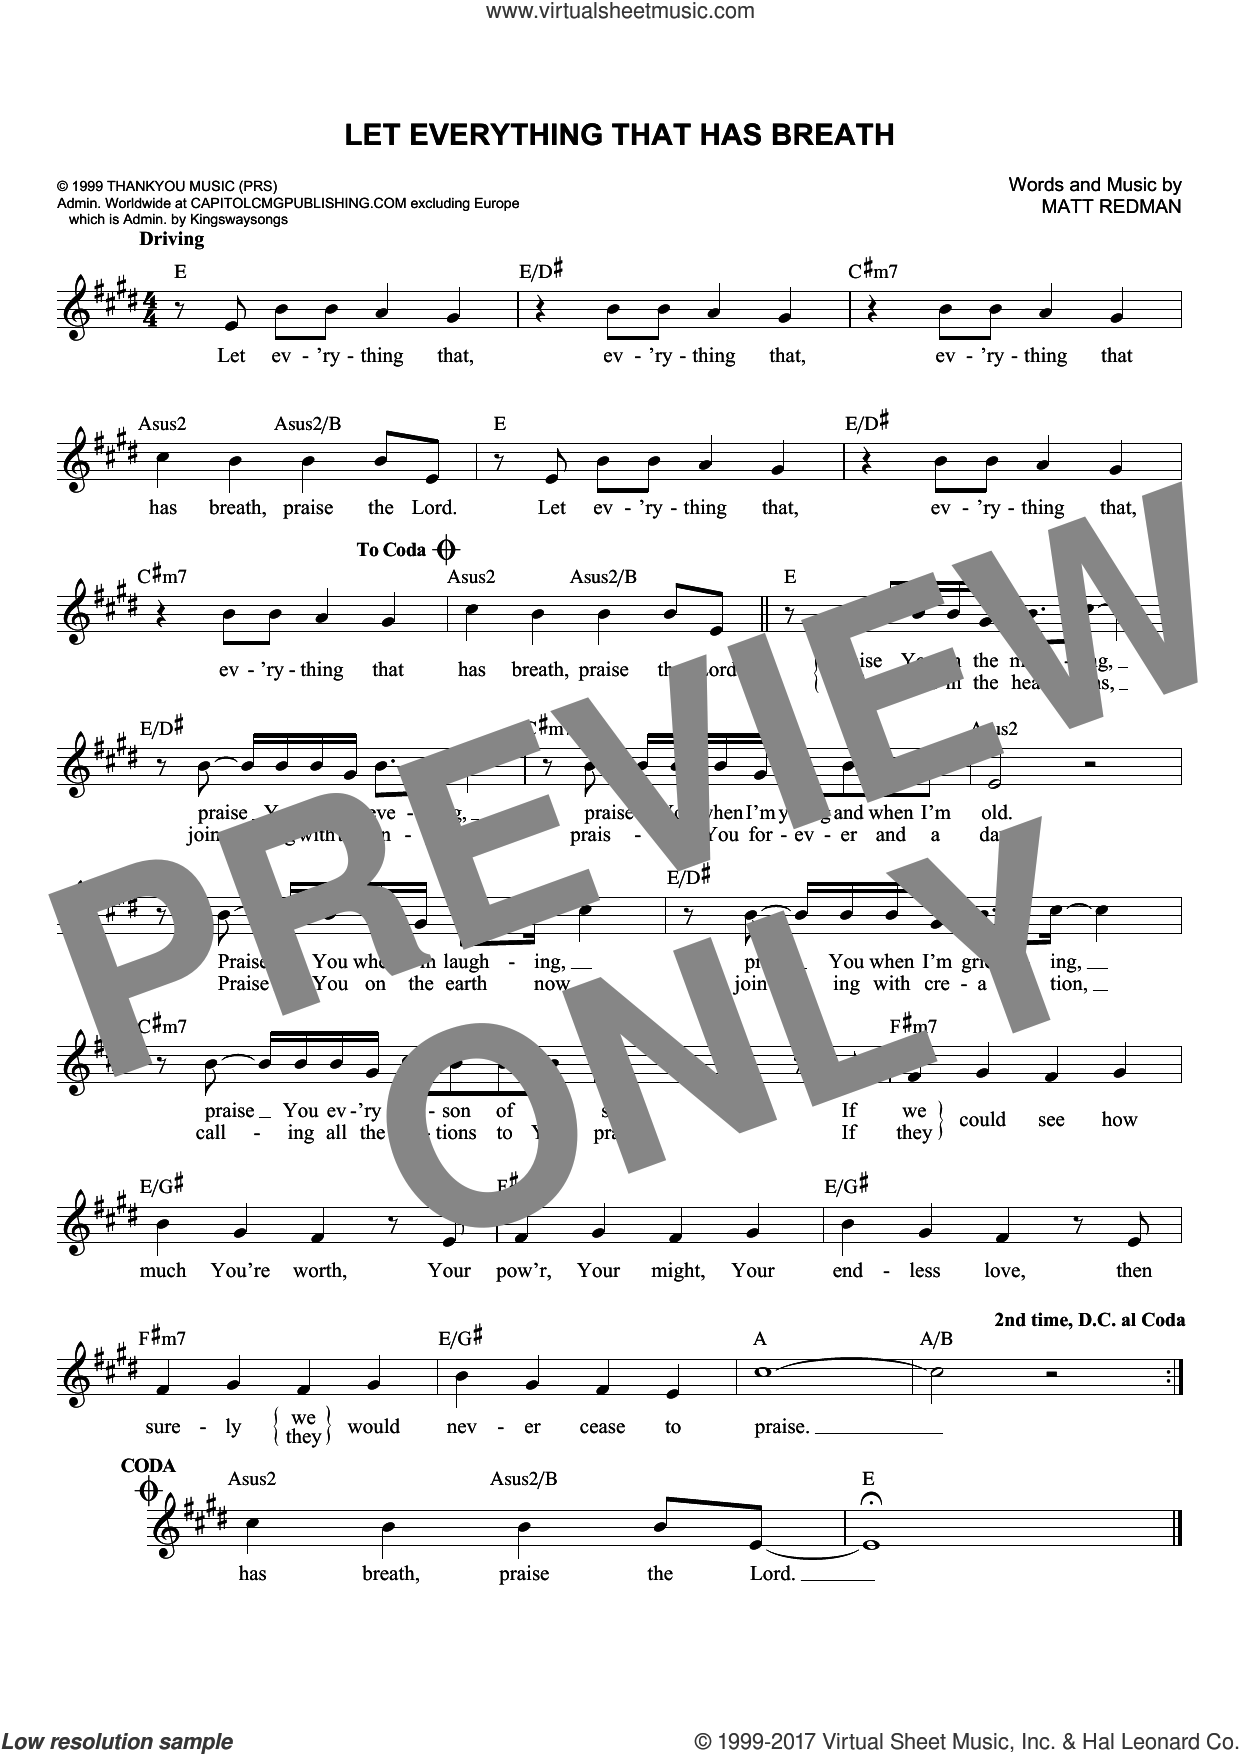 Let Everything That Has Breath sheet music for voice and other instruments (fake book) by Matt Redman and Passion, intermediate skill level